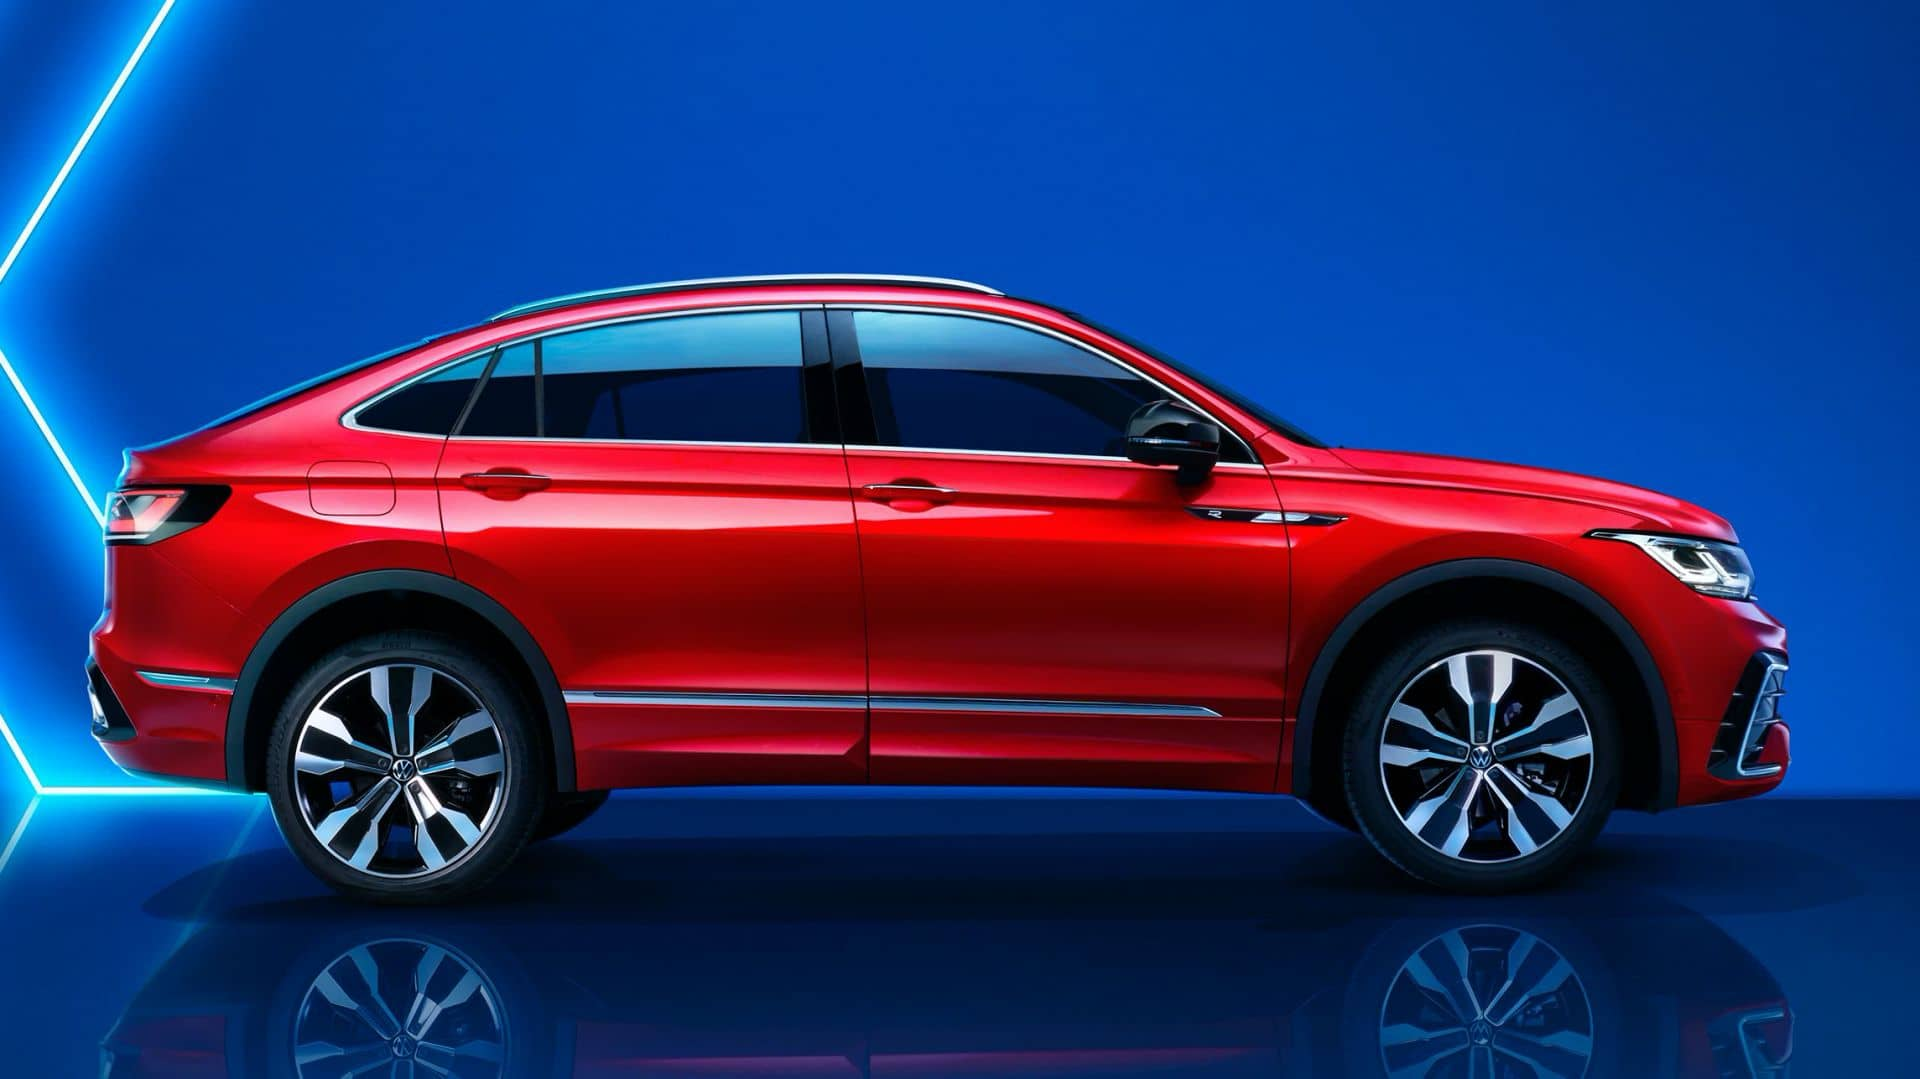 2021-Volkswagen-Tiguan-X-China-spec-5